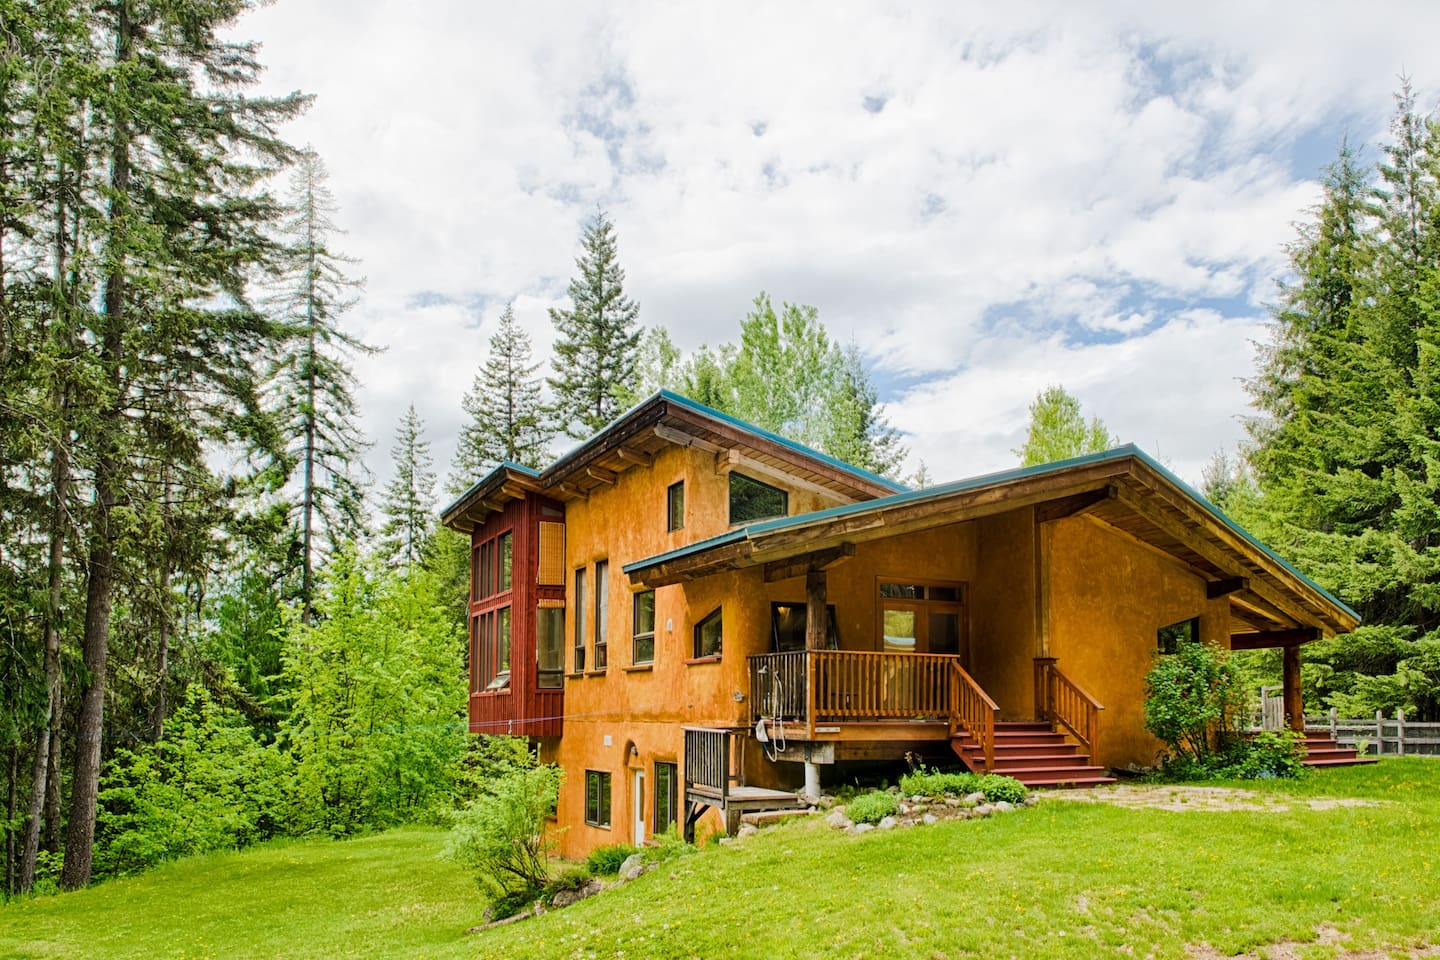 Set in the forest just 15km from Nelson, you have privacy and beauty surrounding you.